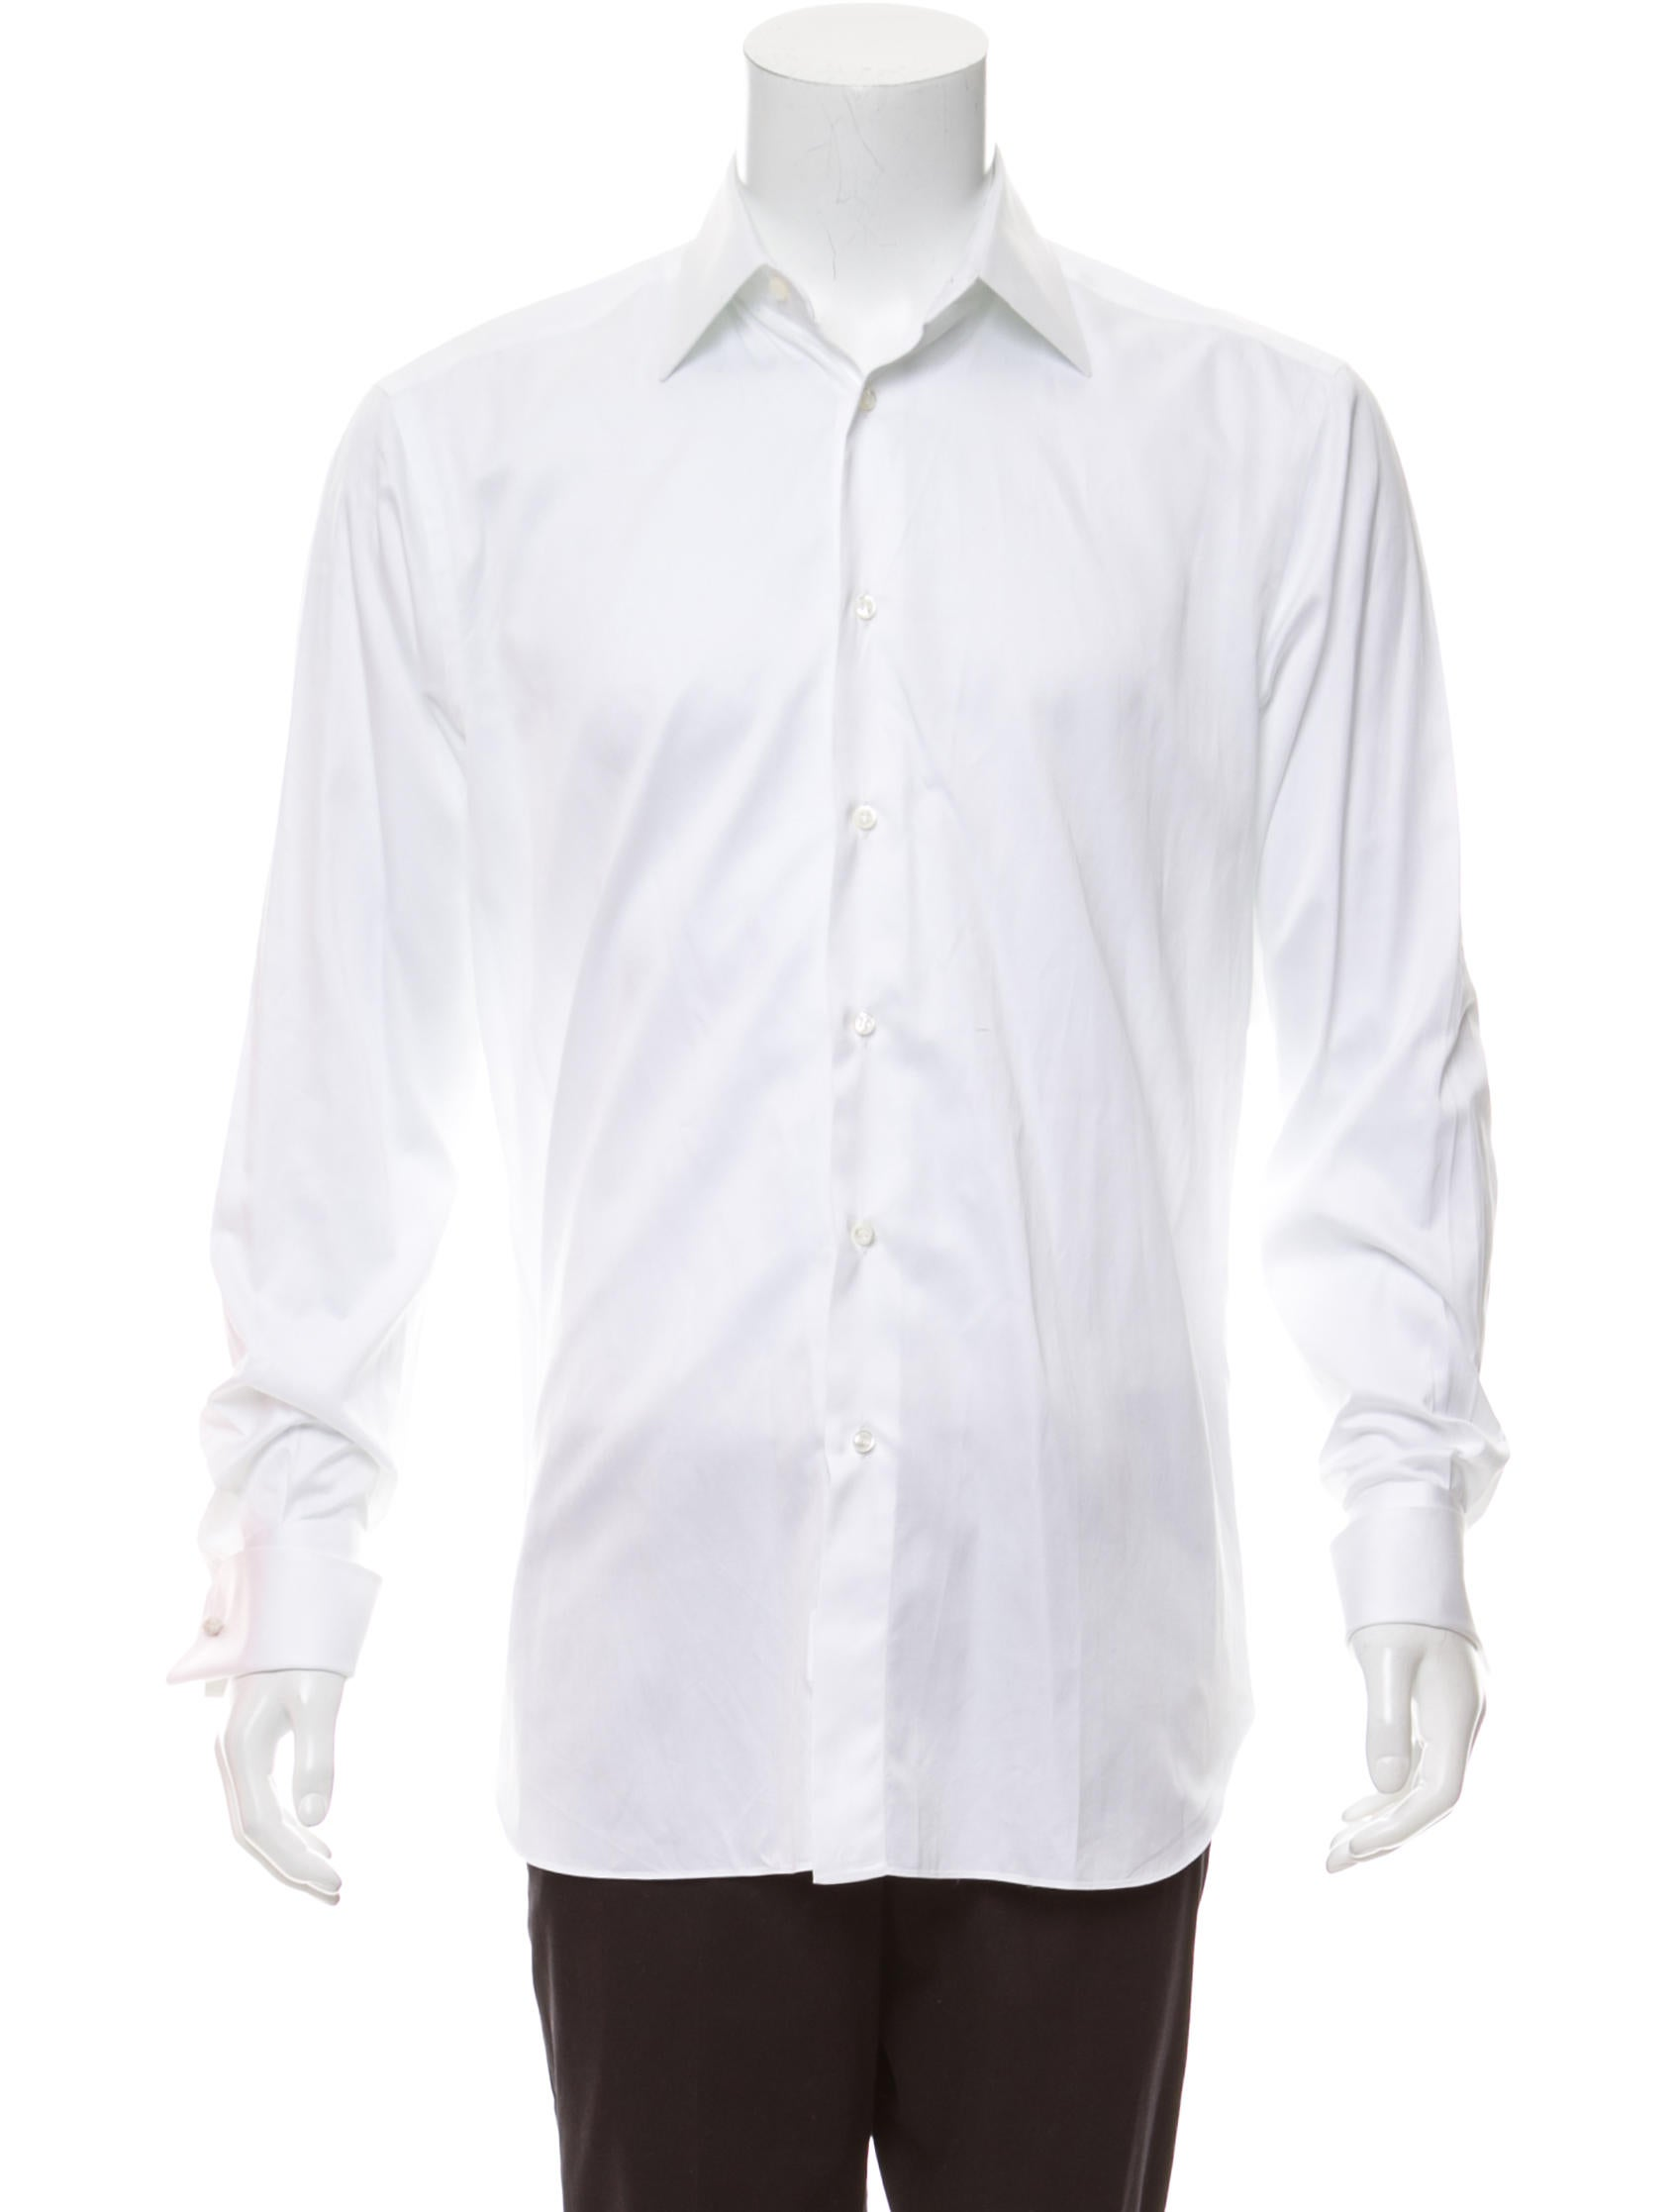 Brioni French Cuff Dress Shirt Clothing Bro24503 The Realreal